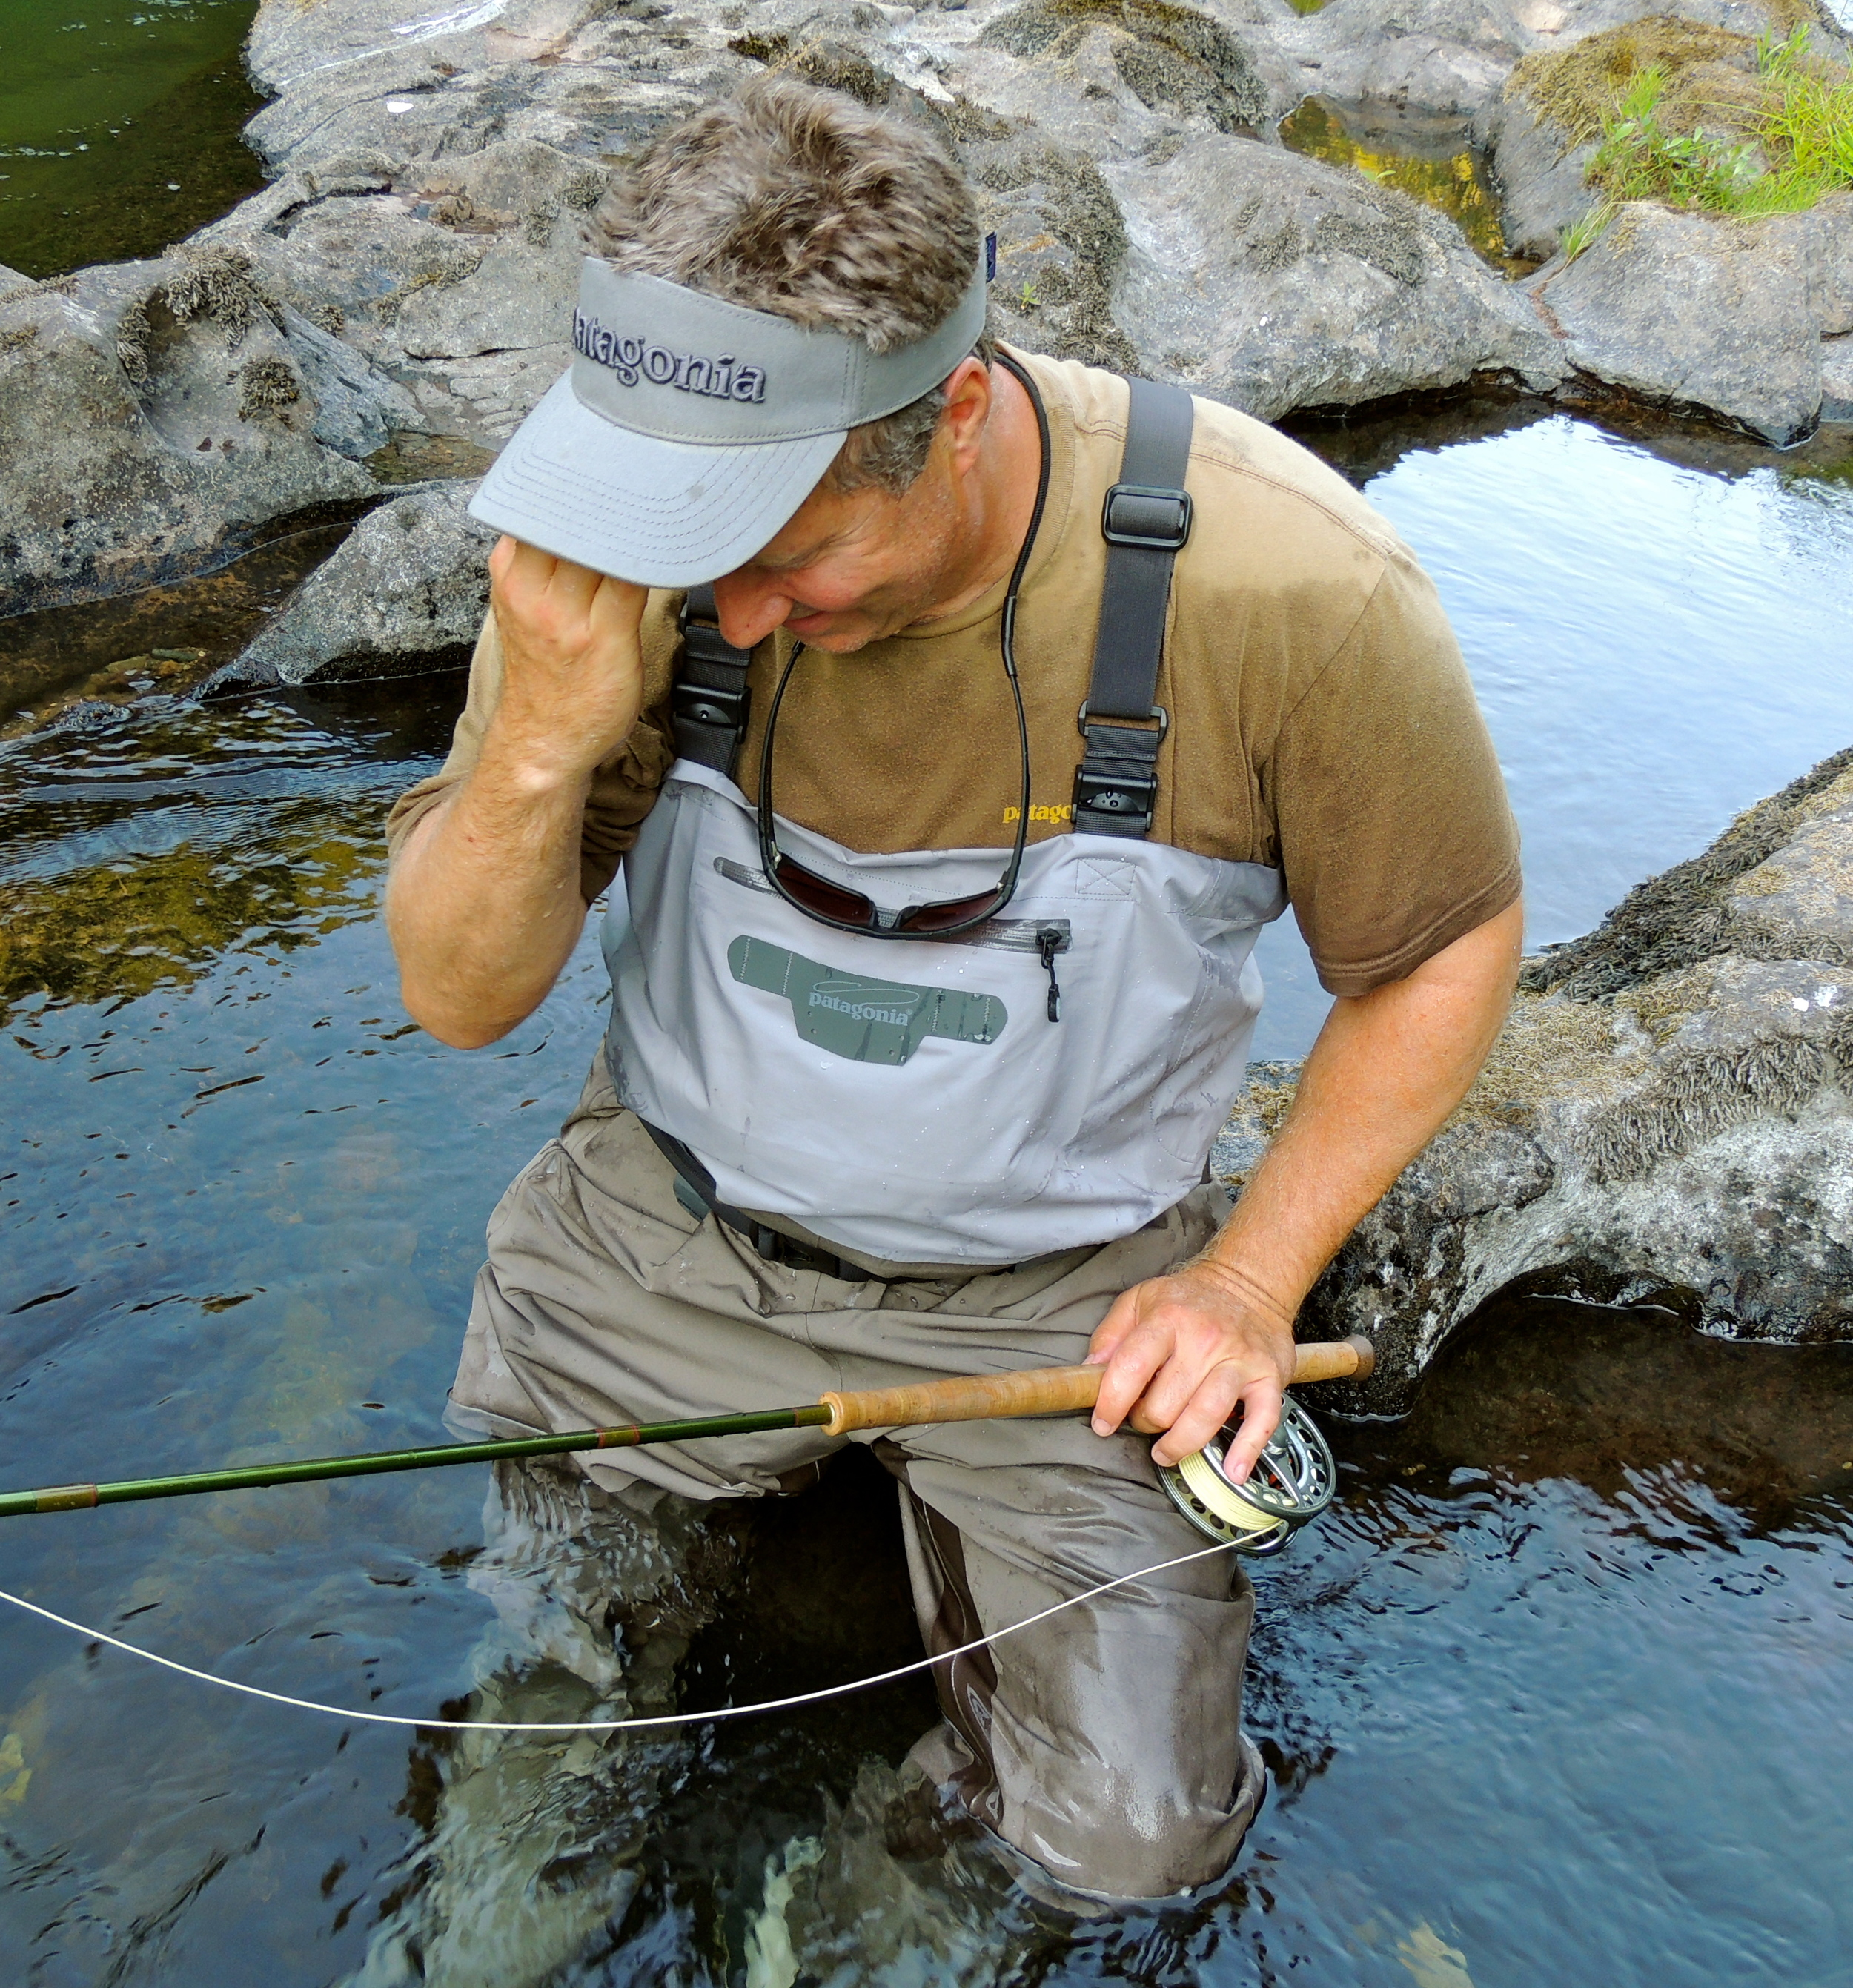 Chris Marto, dealing with the feeling that comes after landing a steelhead that completely clears the water for you fly and then landing is. The guy gets it.